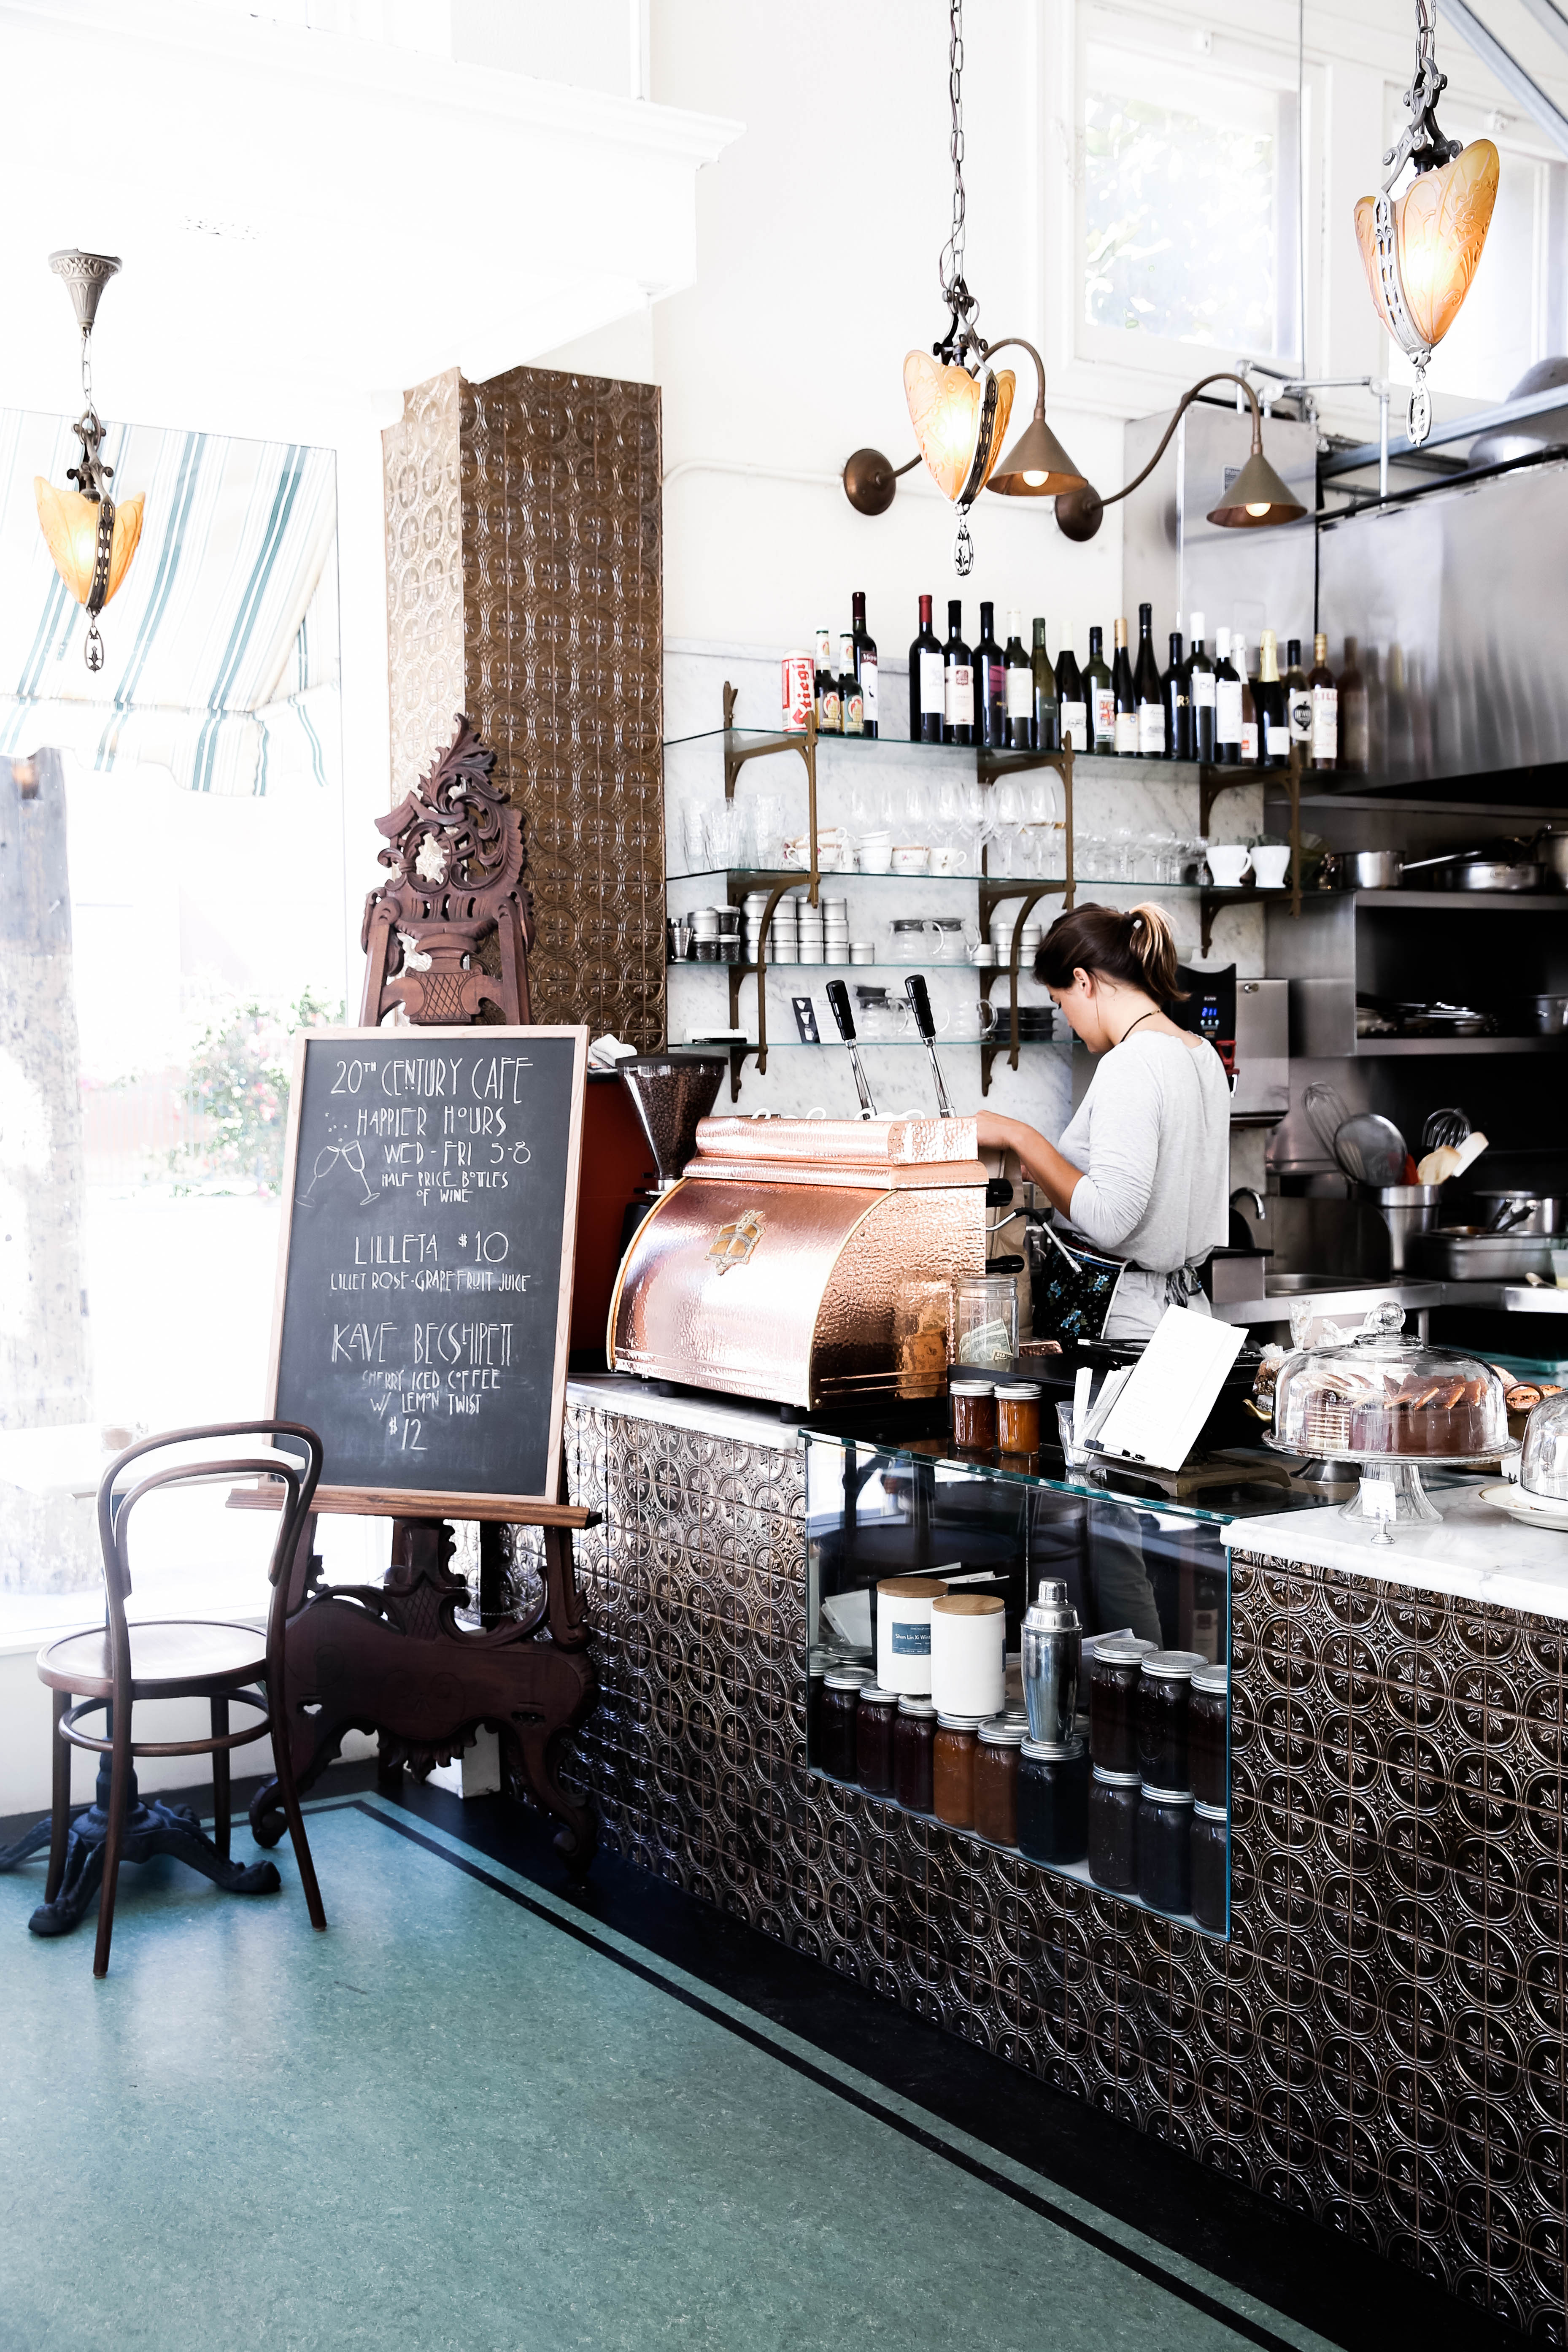 Best of San Francisco Coffee 20th Century Cafe | The Beauty Vanity